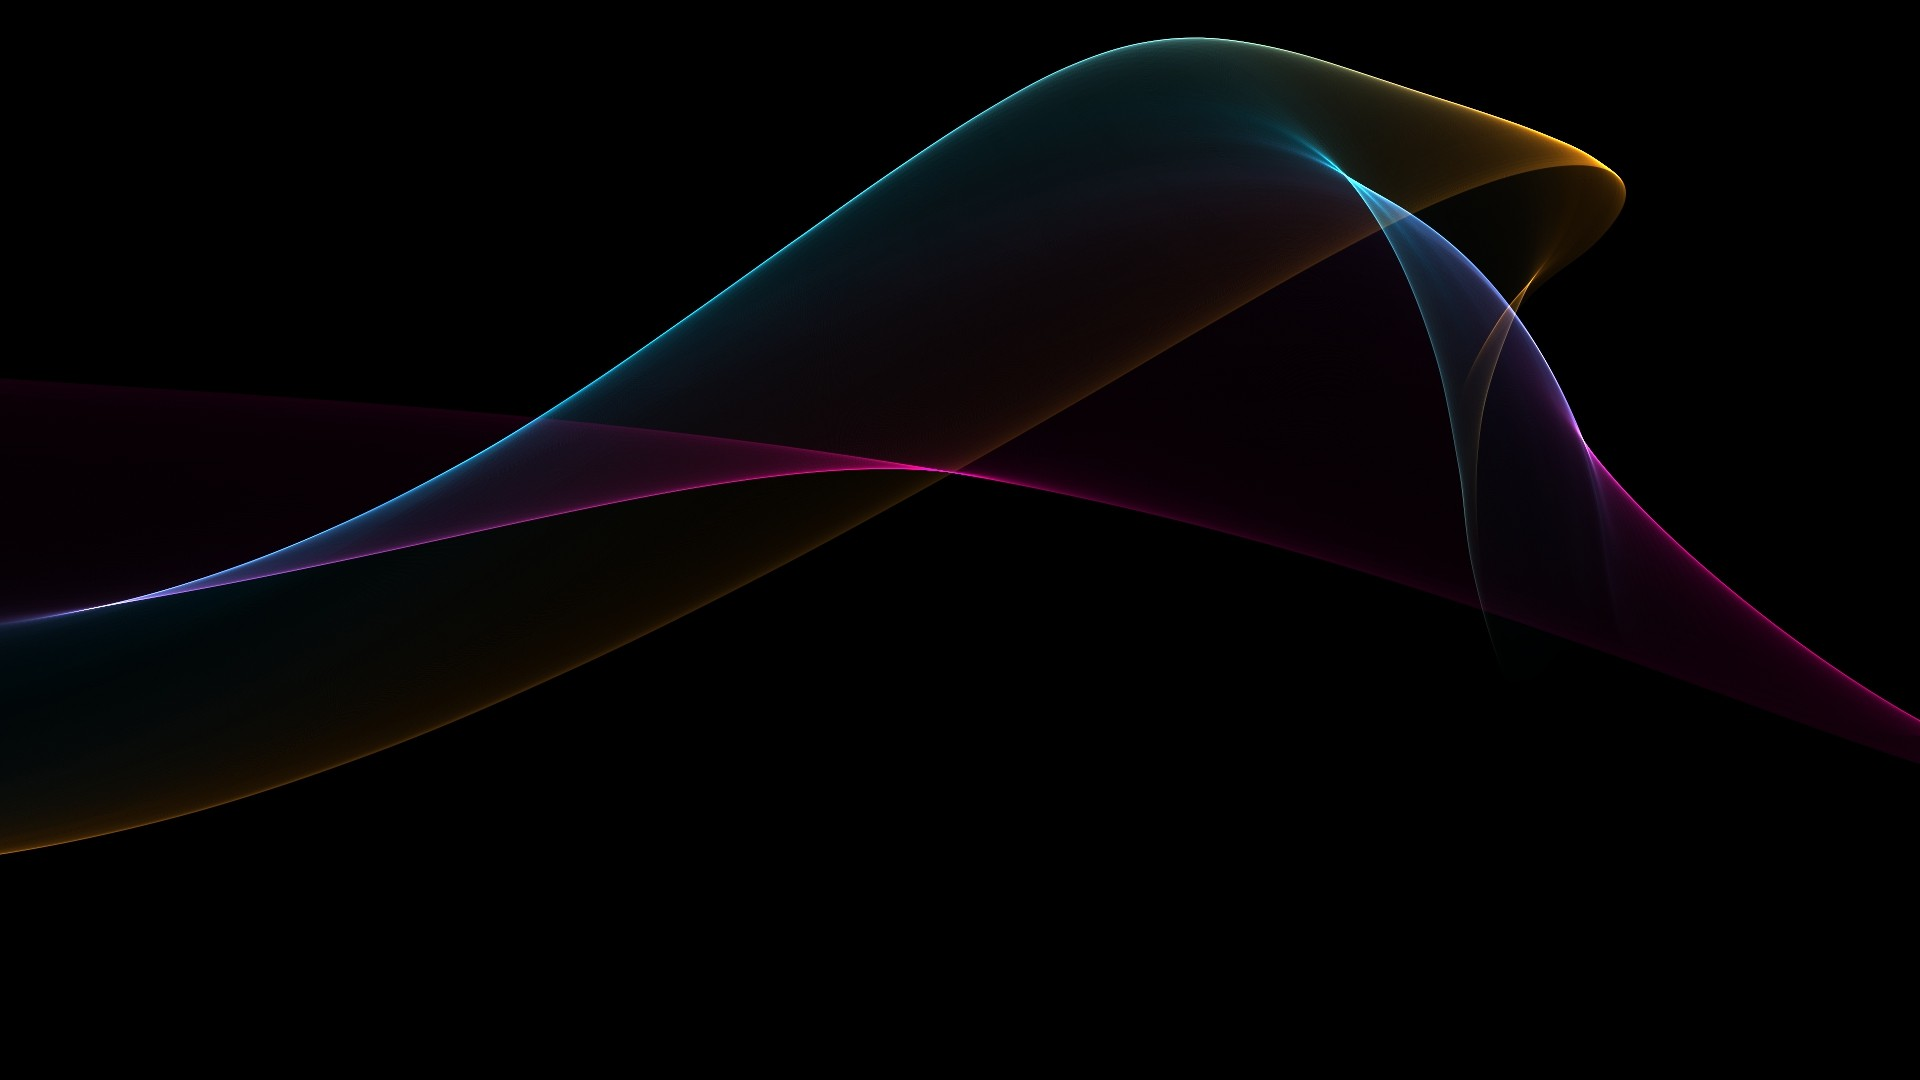 Black Abstract Background Download HD Wallpapers 1920x1080